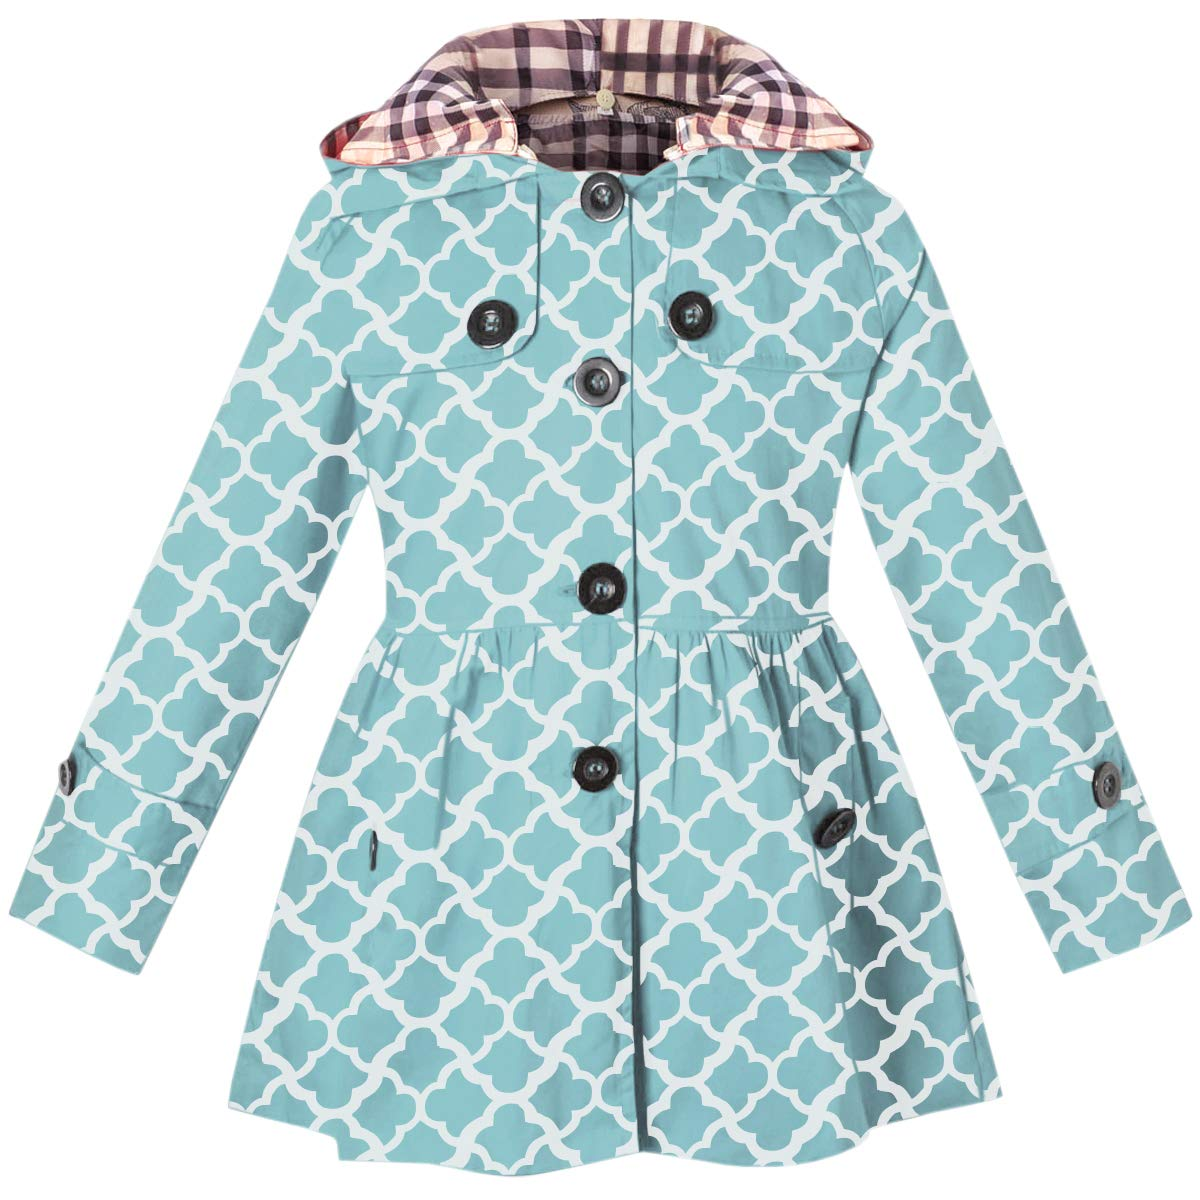 Kids Girls Hooded Trench Coat, Hoodie Jacket Outwear for Girls, Geometry Print Blue, 7-8 Years=Tag 140